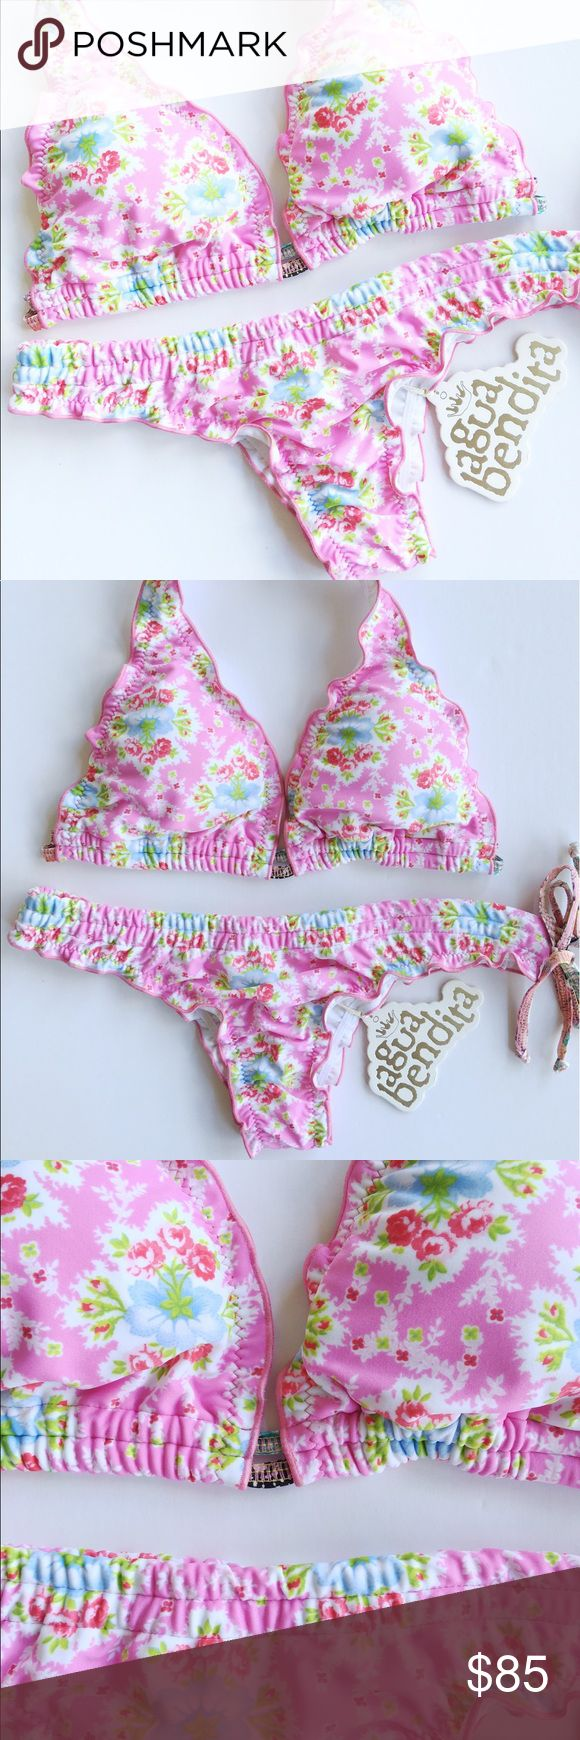 NWT Agua Bendita bikini set medium size New with tags. Bikini set. Cheeky bottom. Excellent quality fabric. Removable pads. Made in colombia. Agua Bendita brand Agua Bendita Swim Bikinis